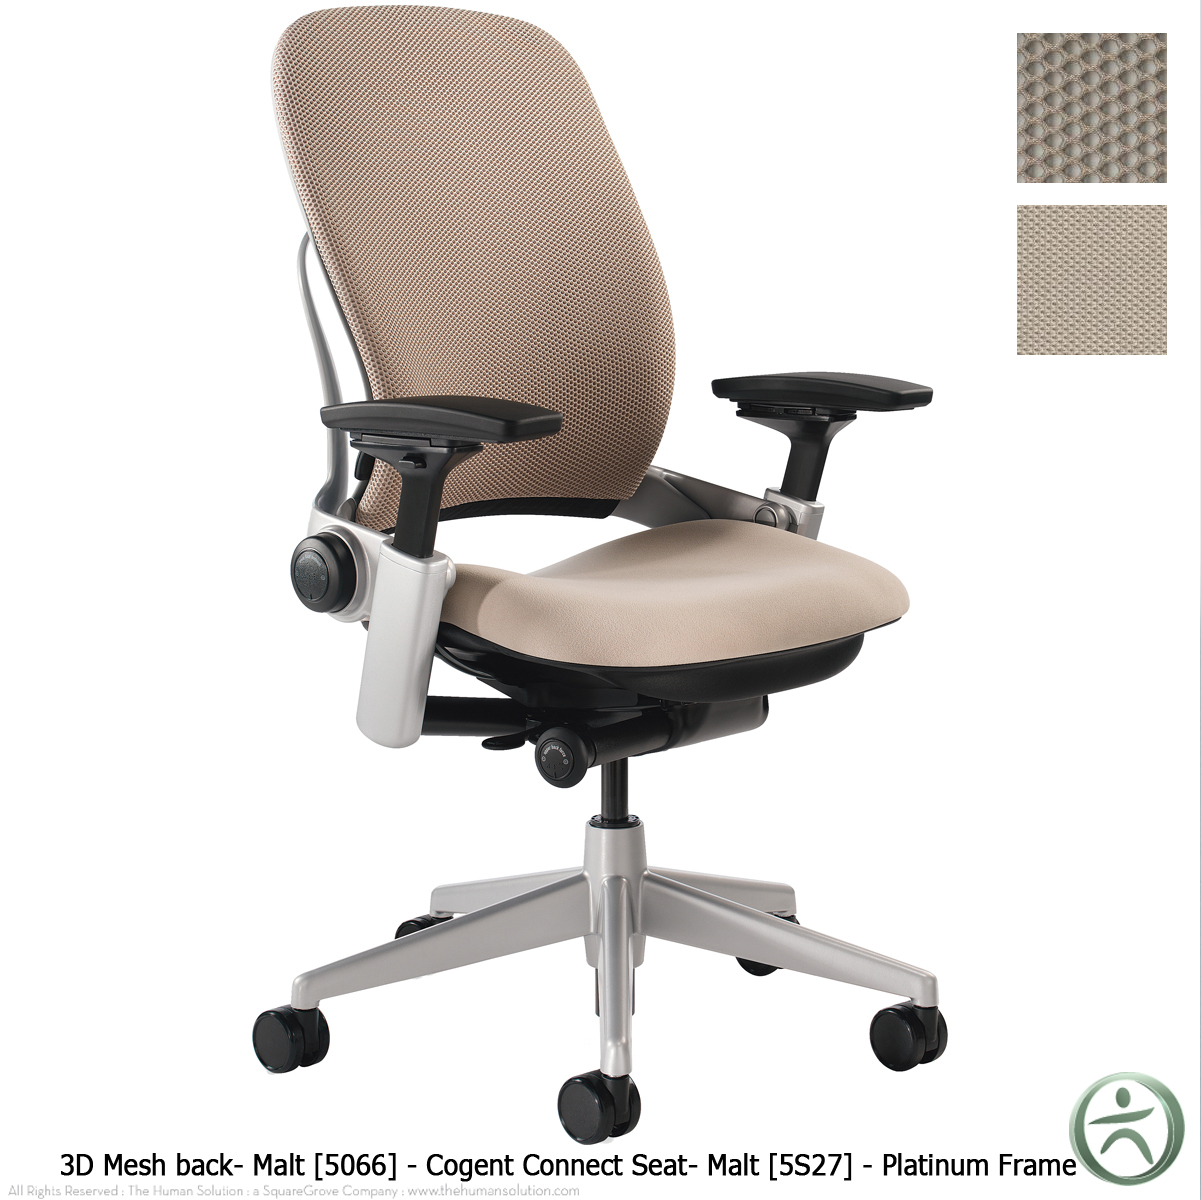 steelcase leap chair rent folding chairs shop with 3d knit mesh back